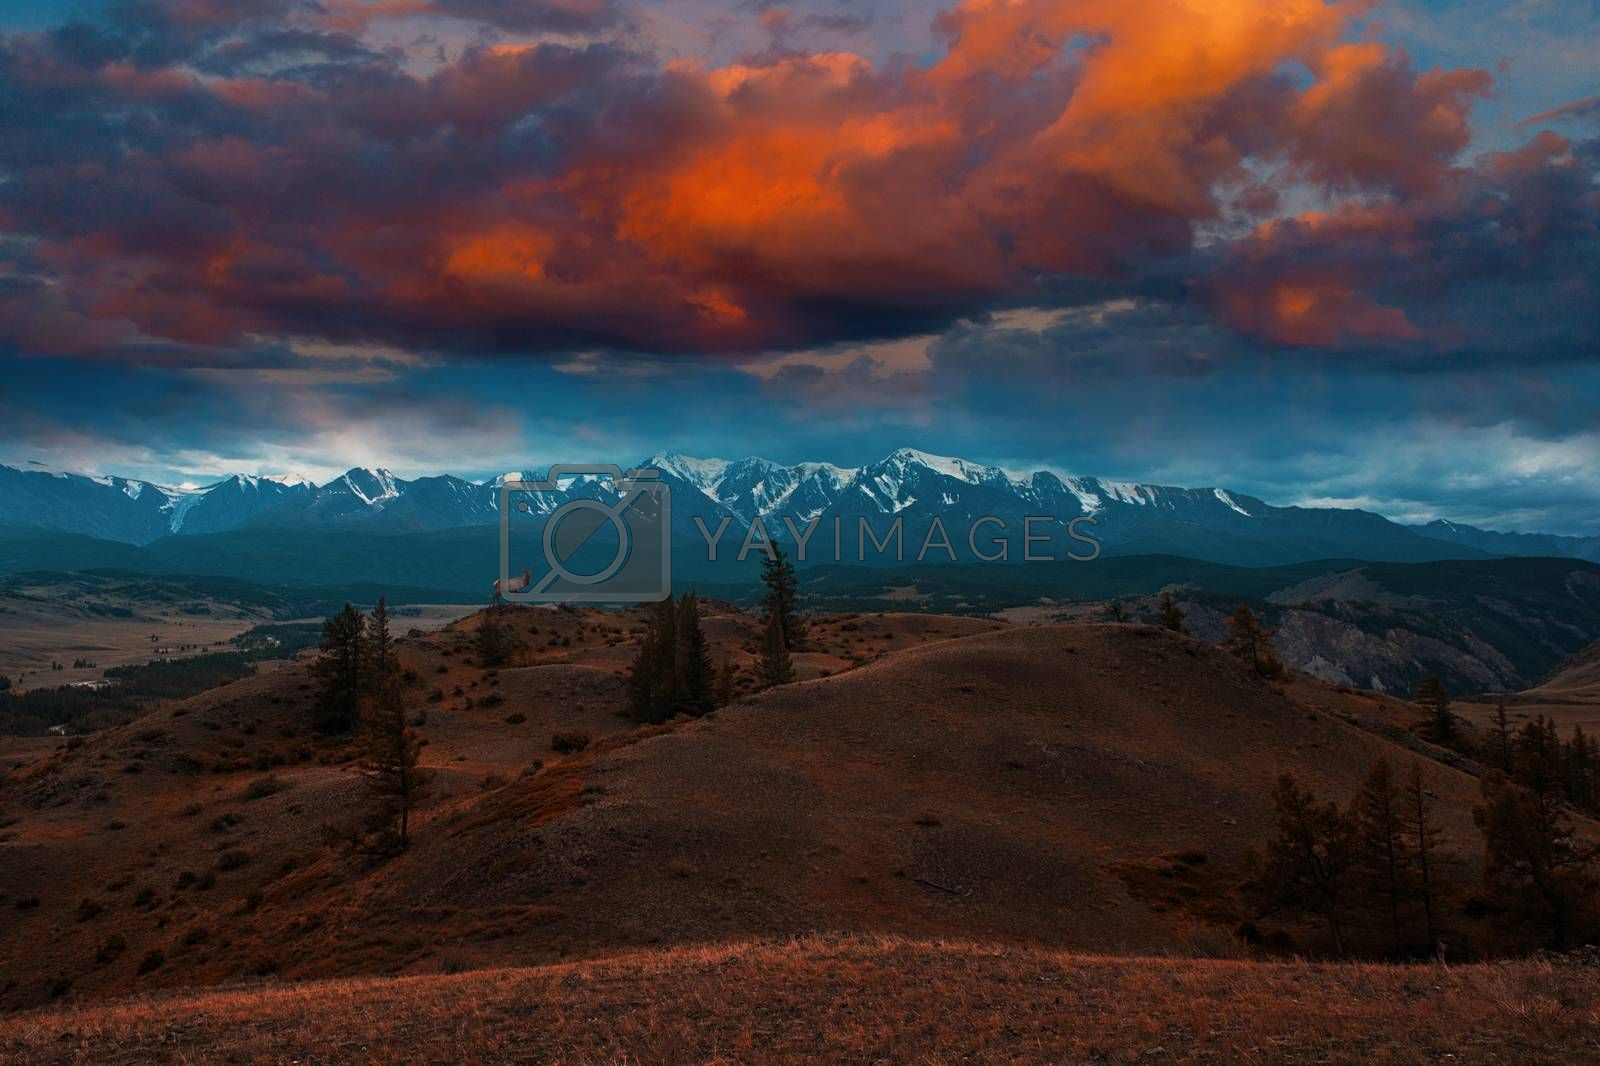 Royalty free image of Maral on mountains background by rusak